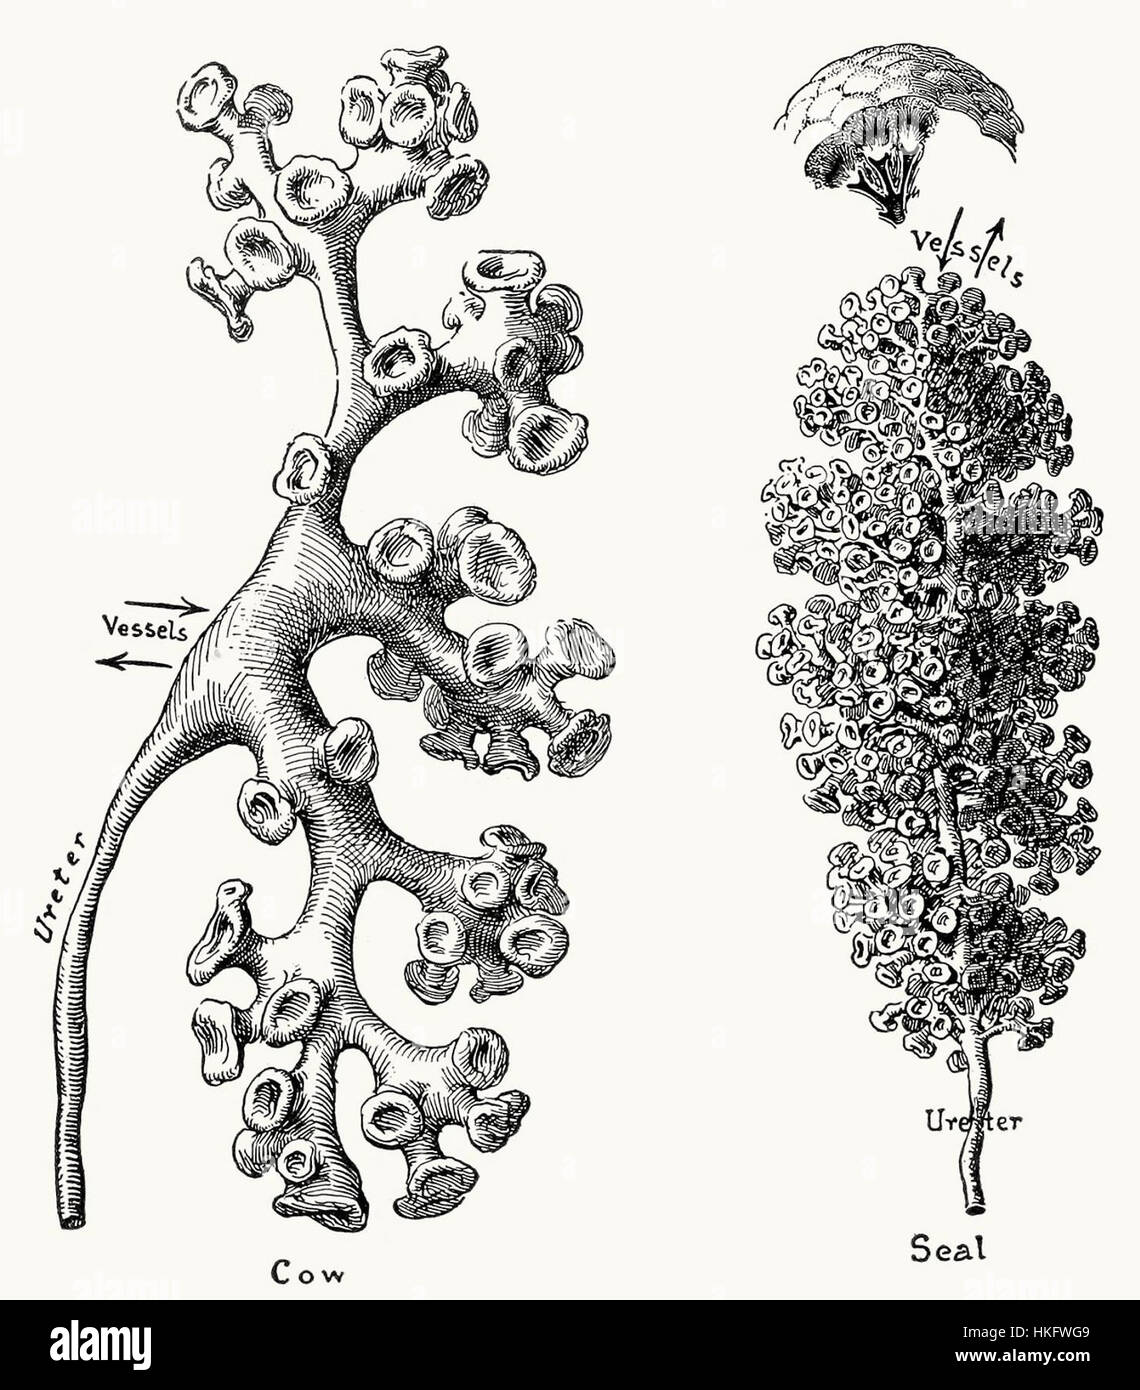 Renal pelves and calices - Stock Image